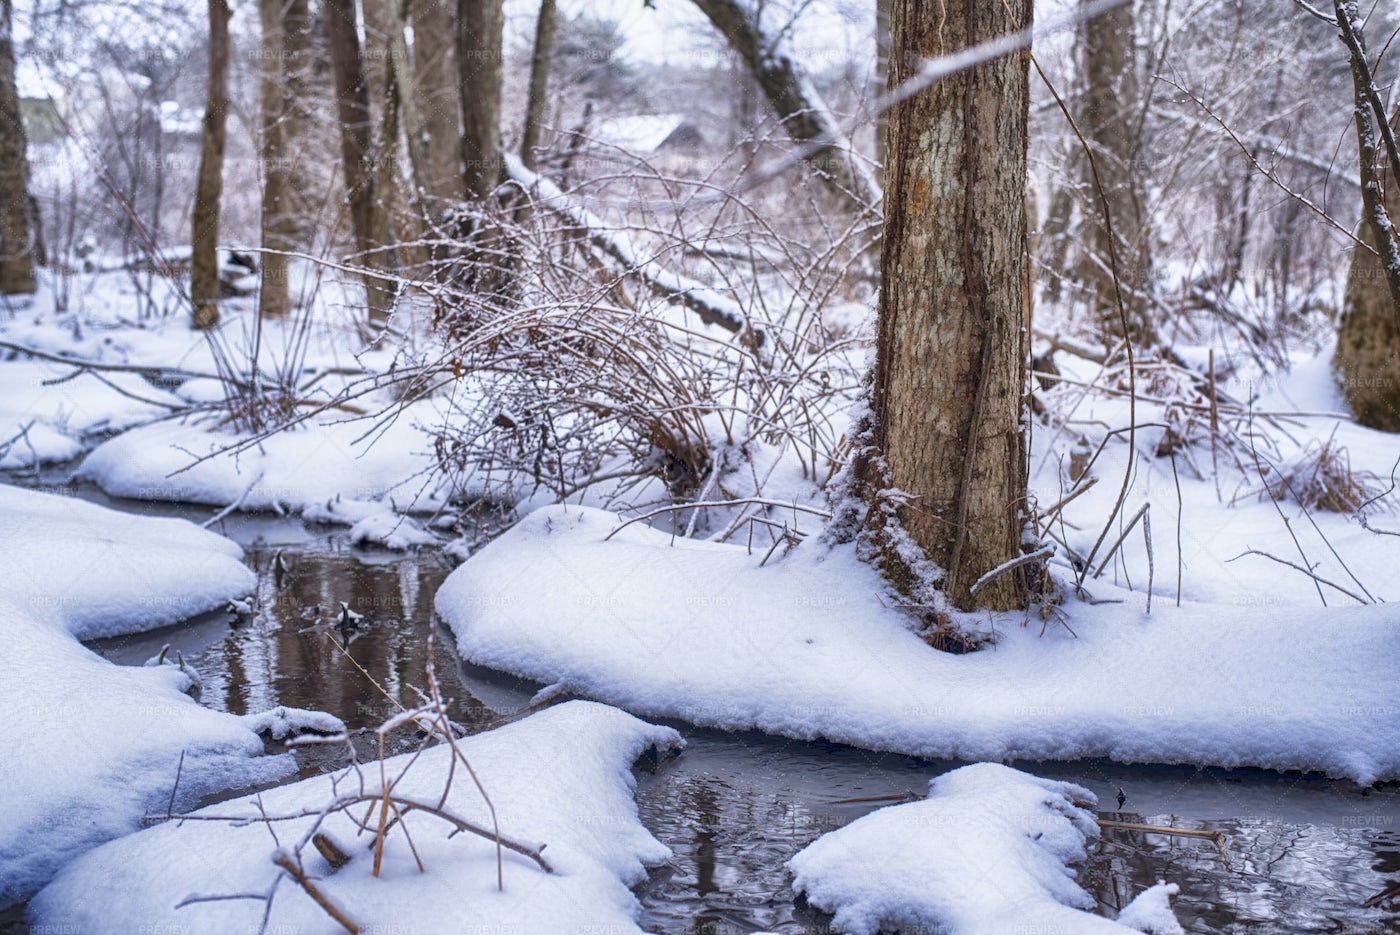 Snowy Winter Forest Stream: Stock Photos